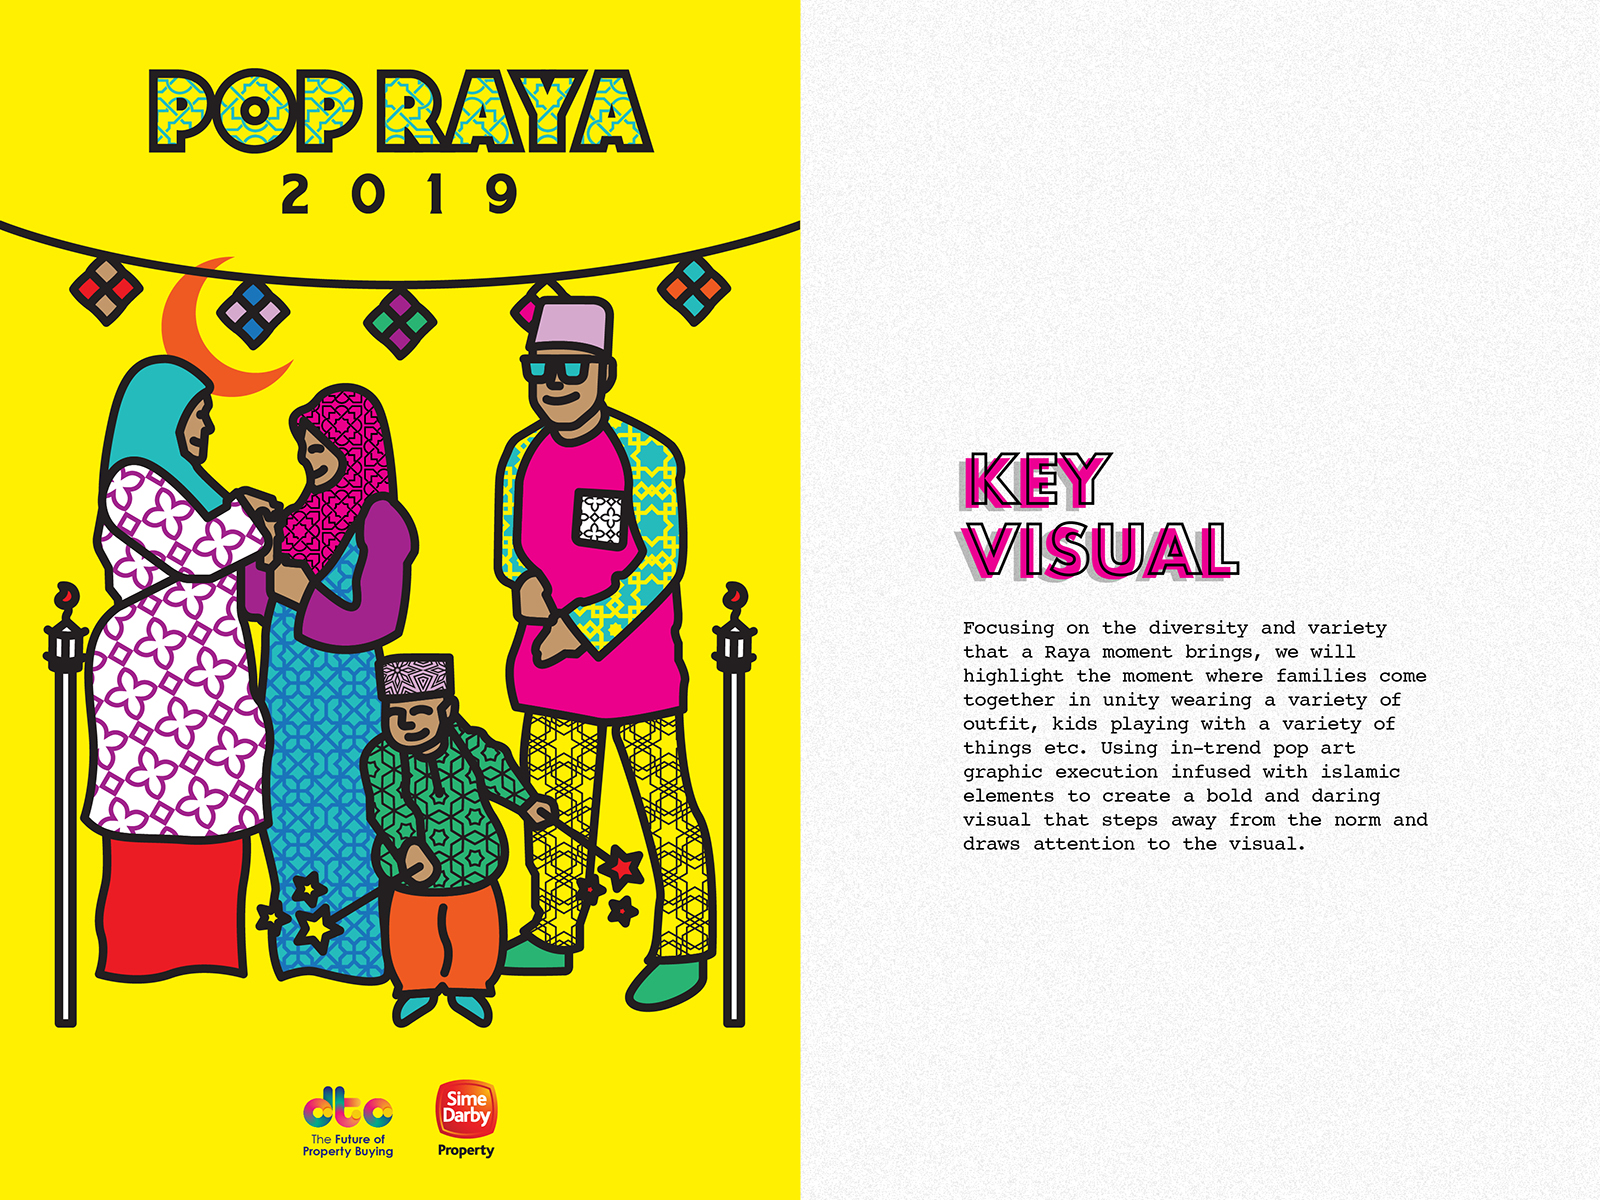 Sime Darby POPRAYA 2019 key visual design featuring a returning to hometown scene with festive decorations and reunion of family members and child playing fireworks